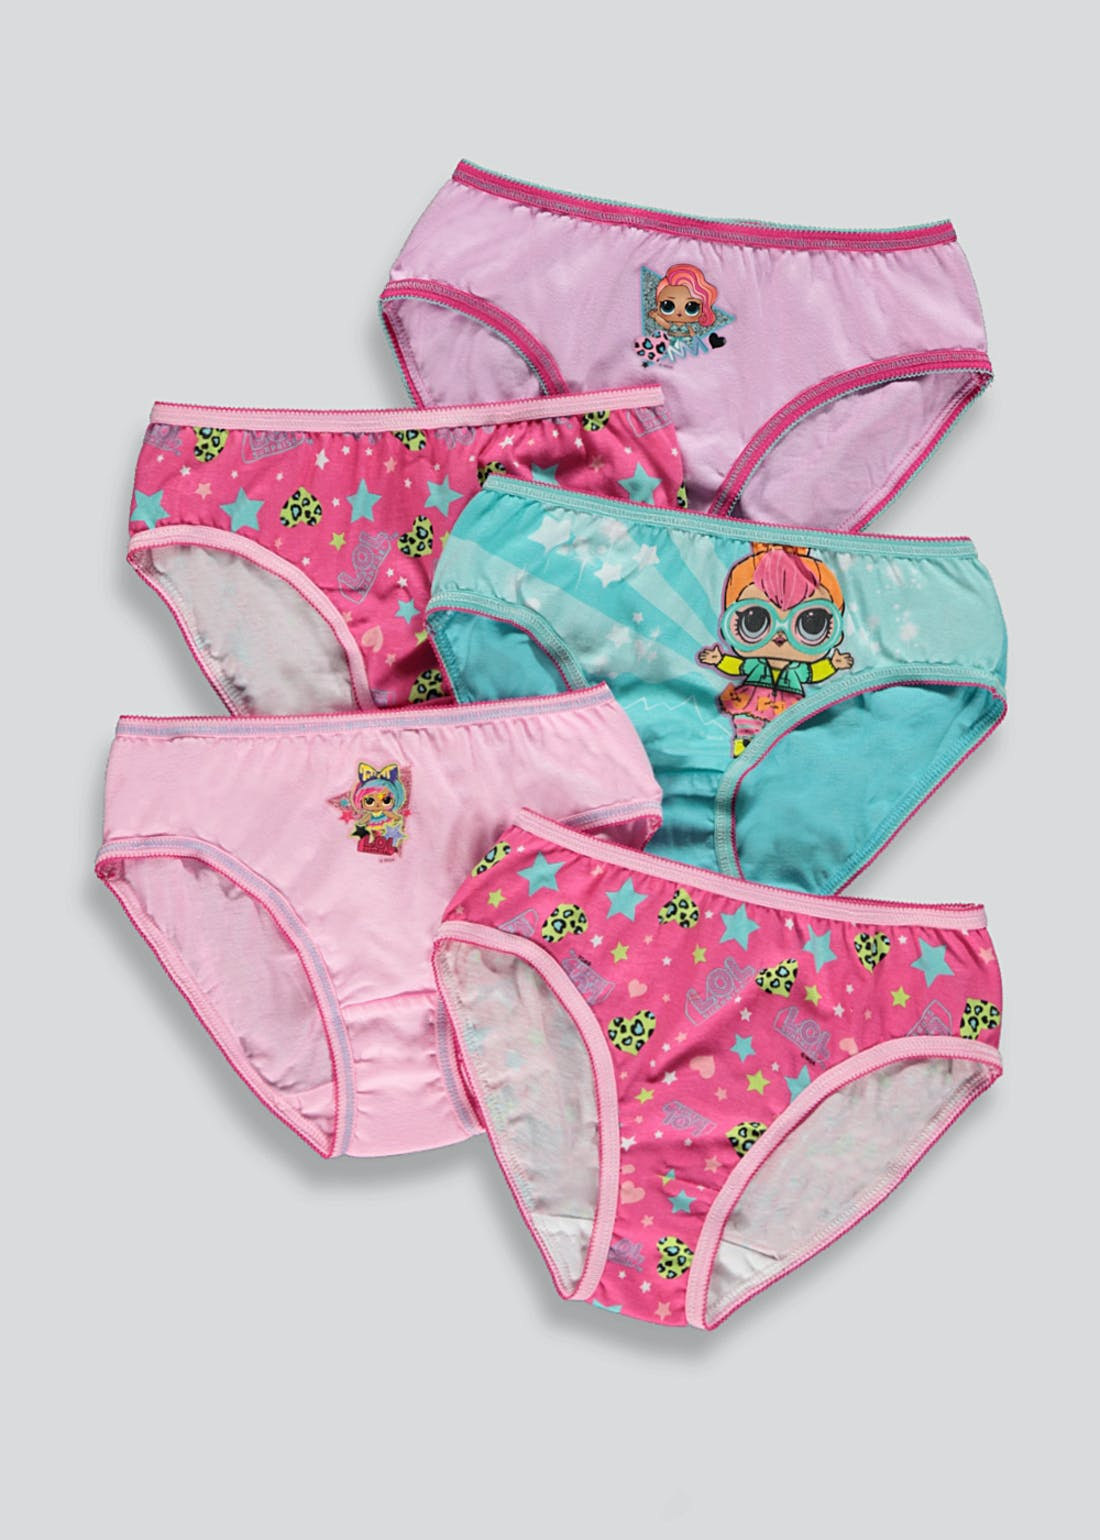 Girls 5 Pack L.O.L. Surprise Knickers (4-11yrs)